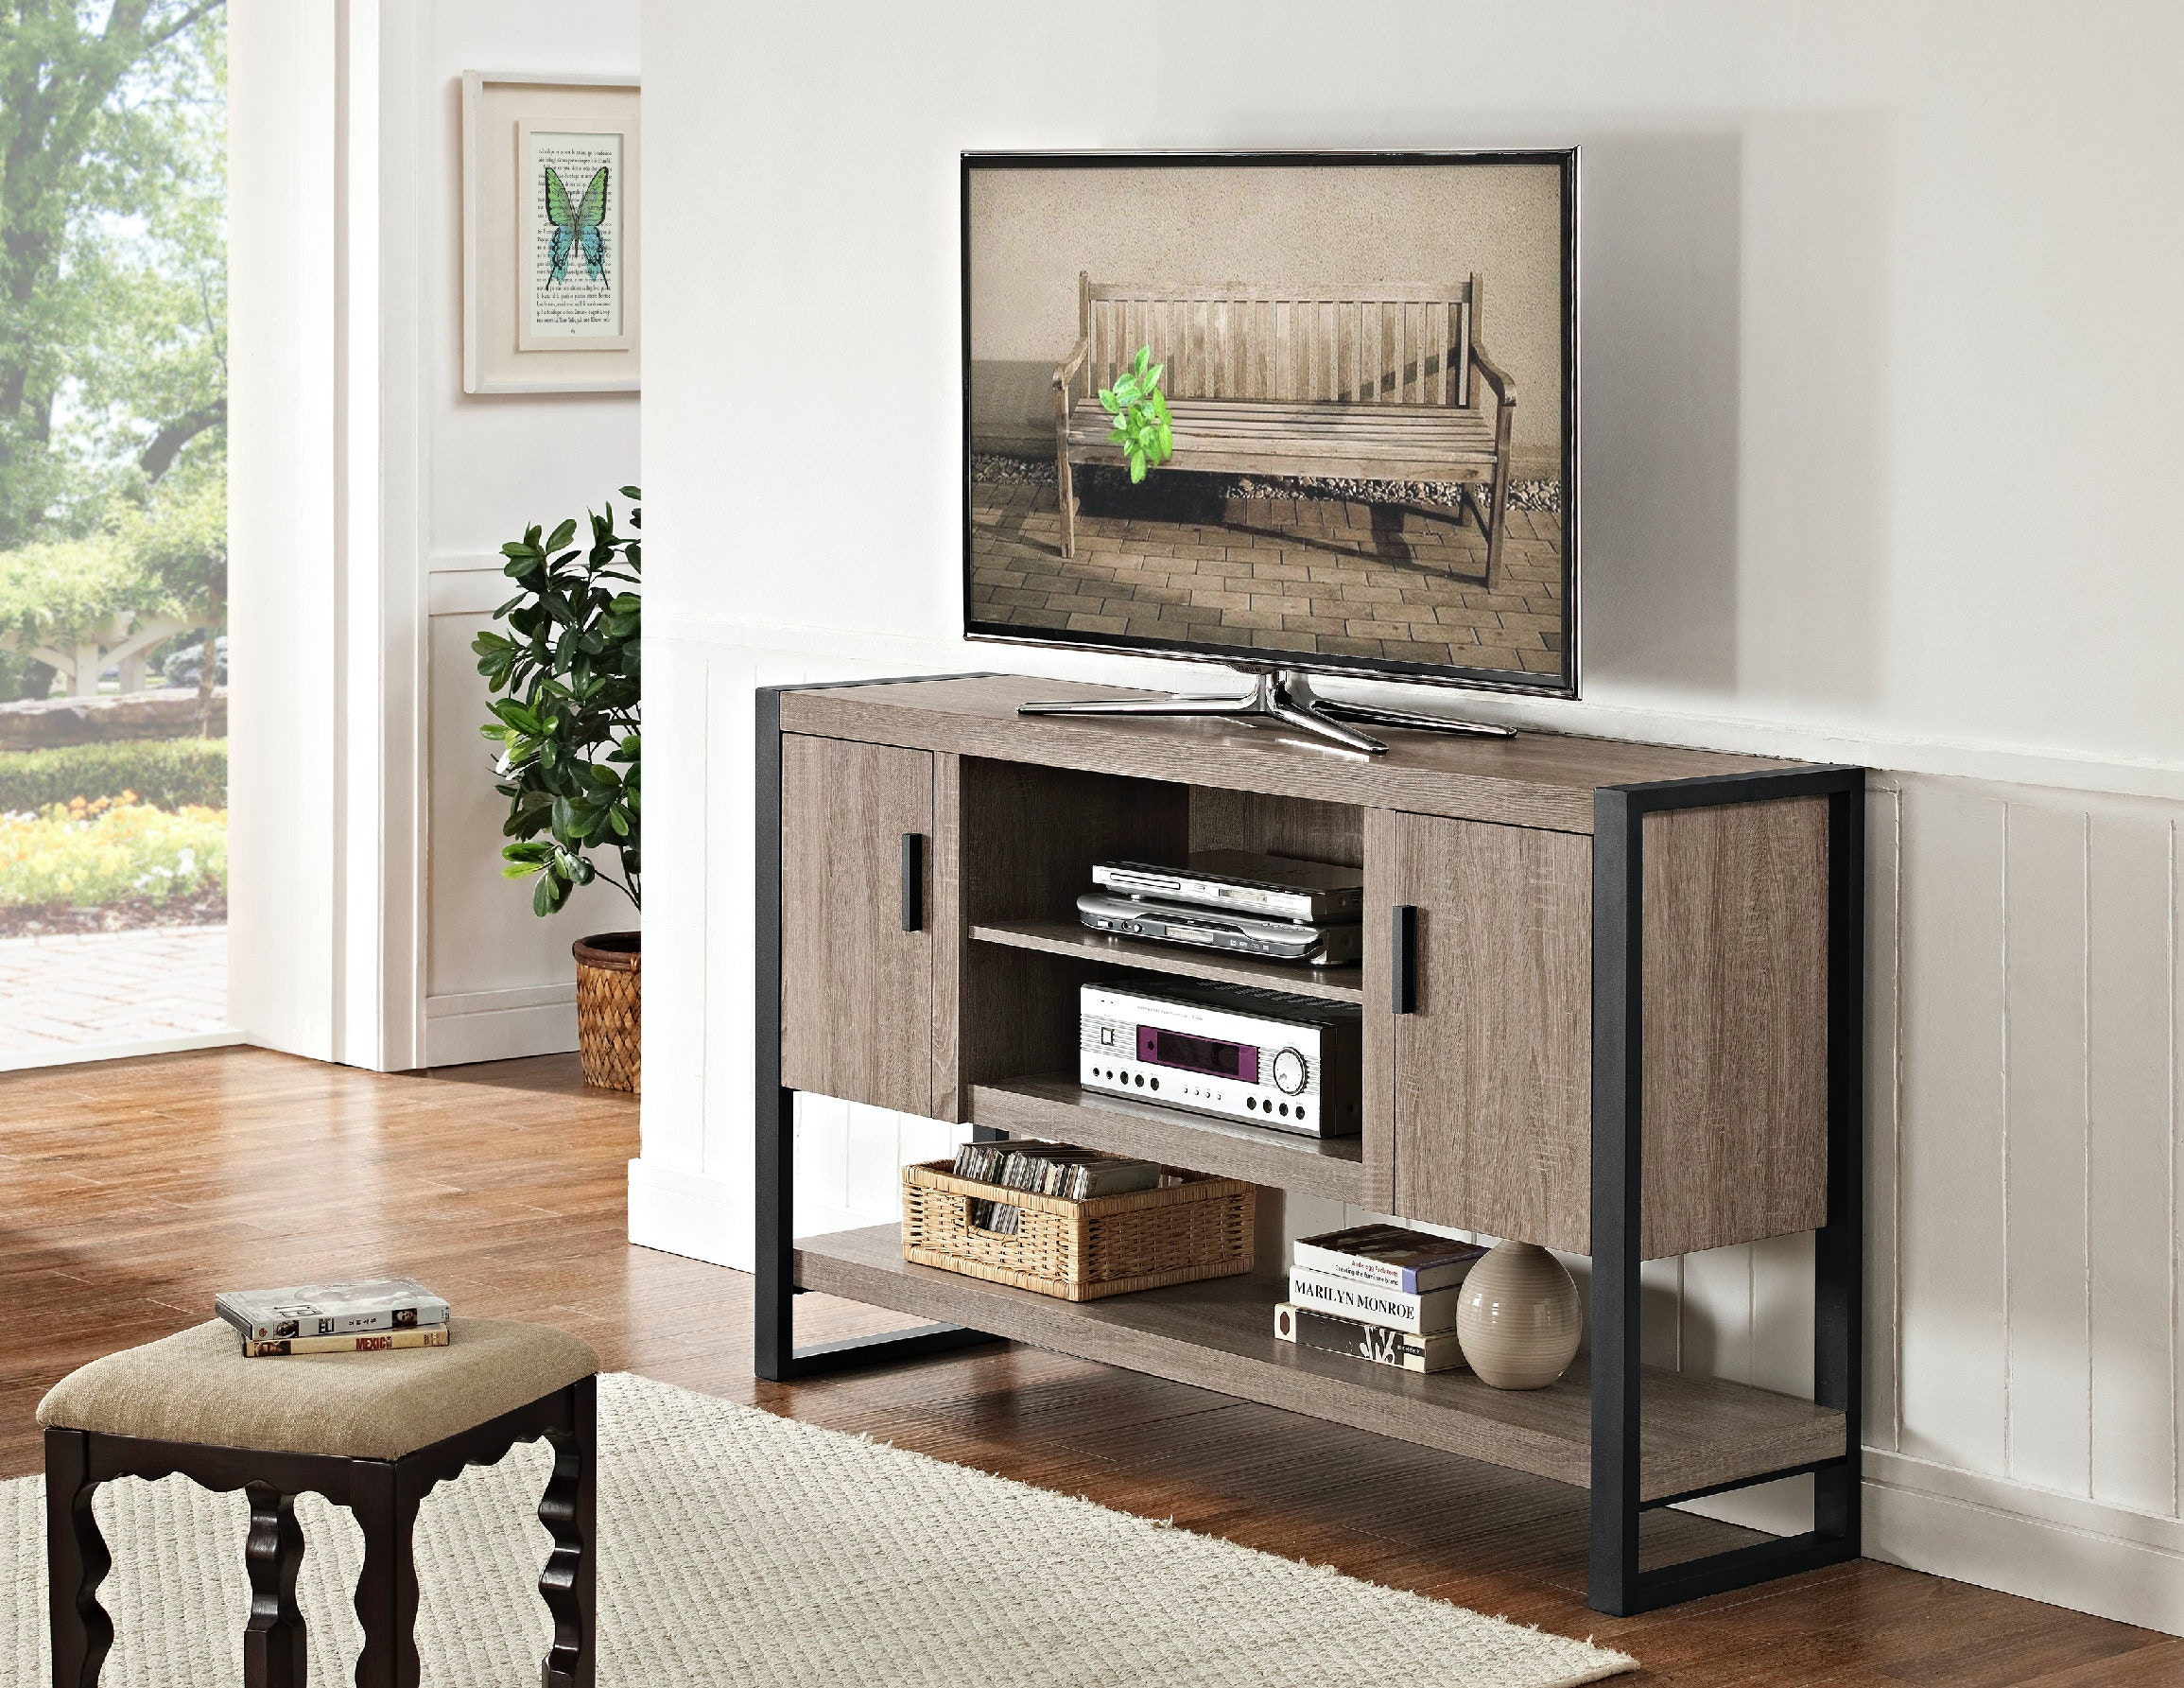 Ft Myers 60u0027u0027 Urban Blend TV Console Table/Buffet WEDW60UBCTAG From Walter E